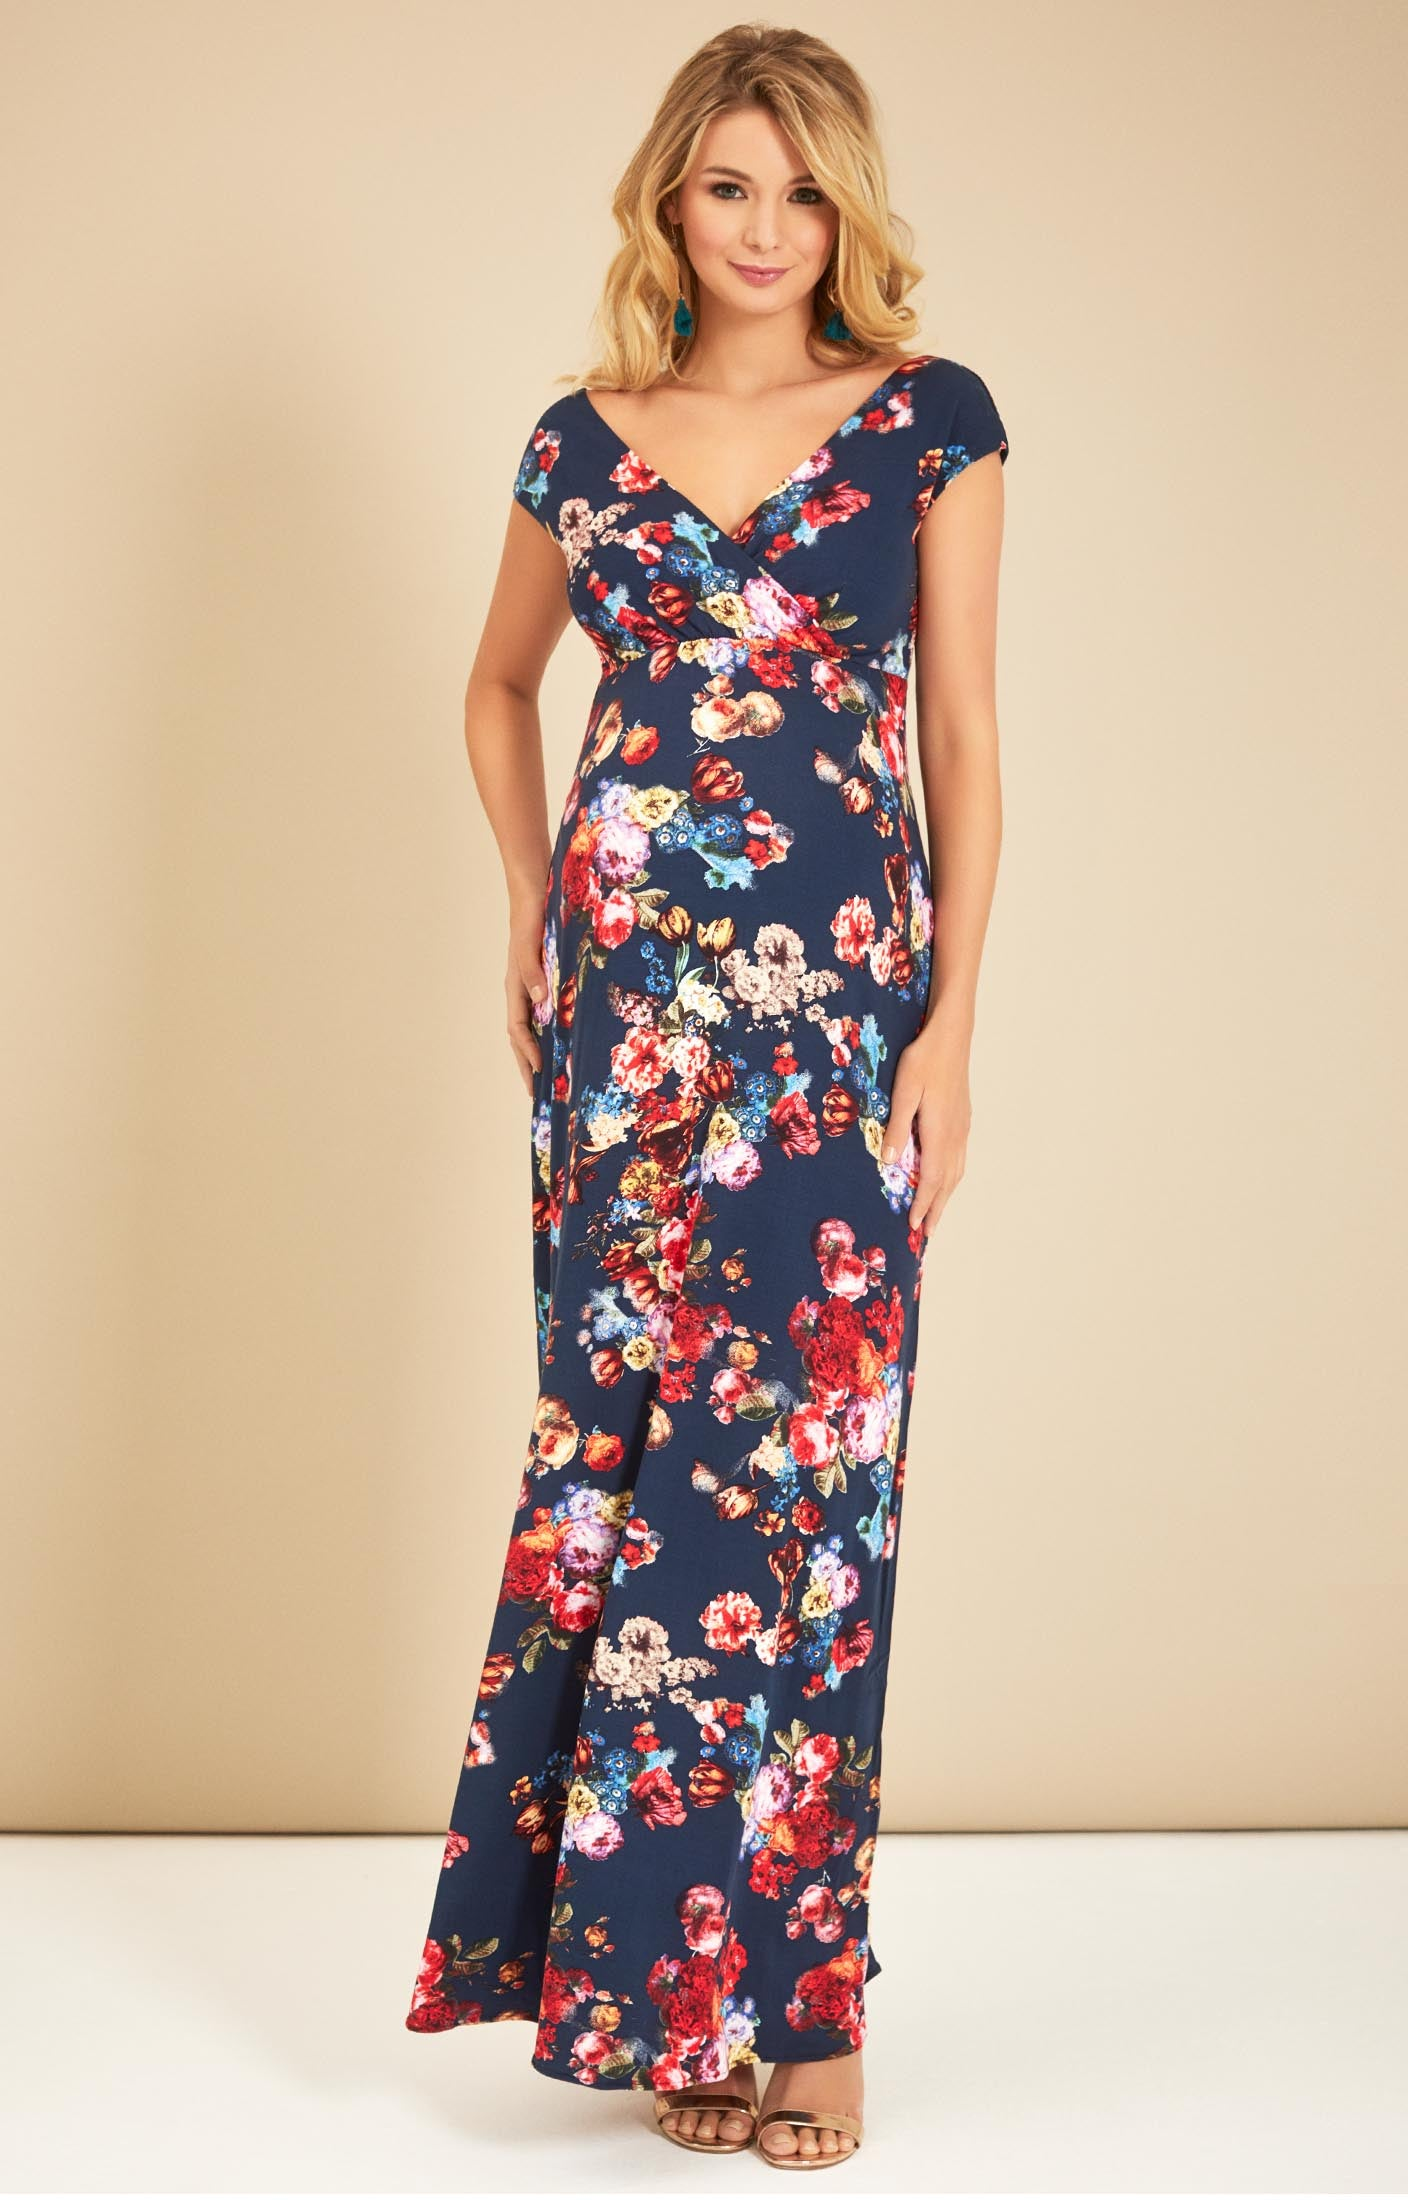 ea41bf42b4a05 Tiffany Rose Maternity & Nursing Alana Maxi Dress Midnight Garden Was  $330.00, now $220.00 SALE   Up To 50% Off